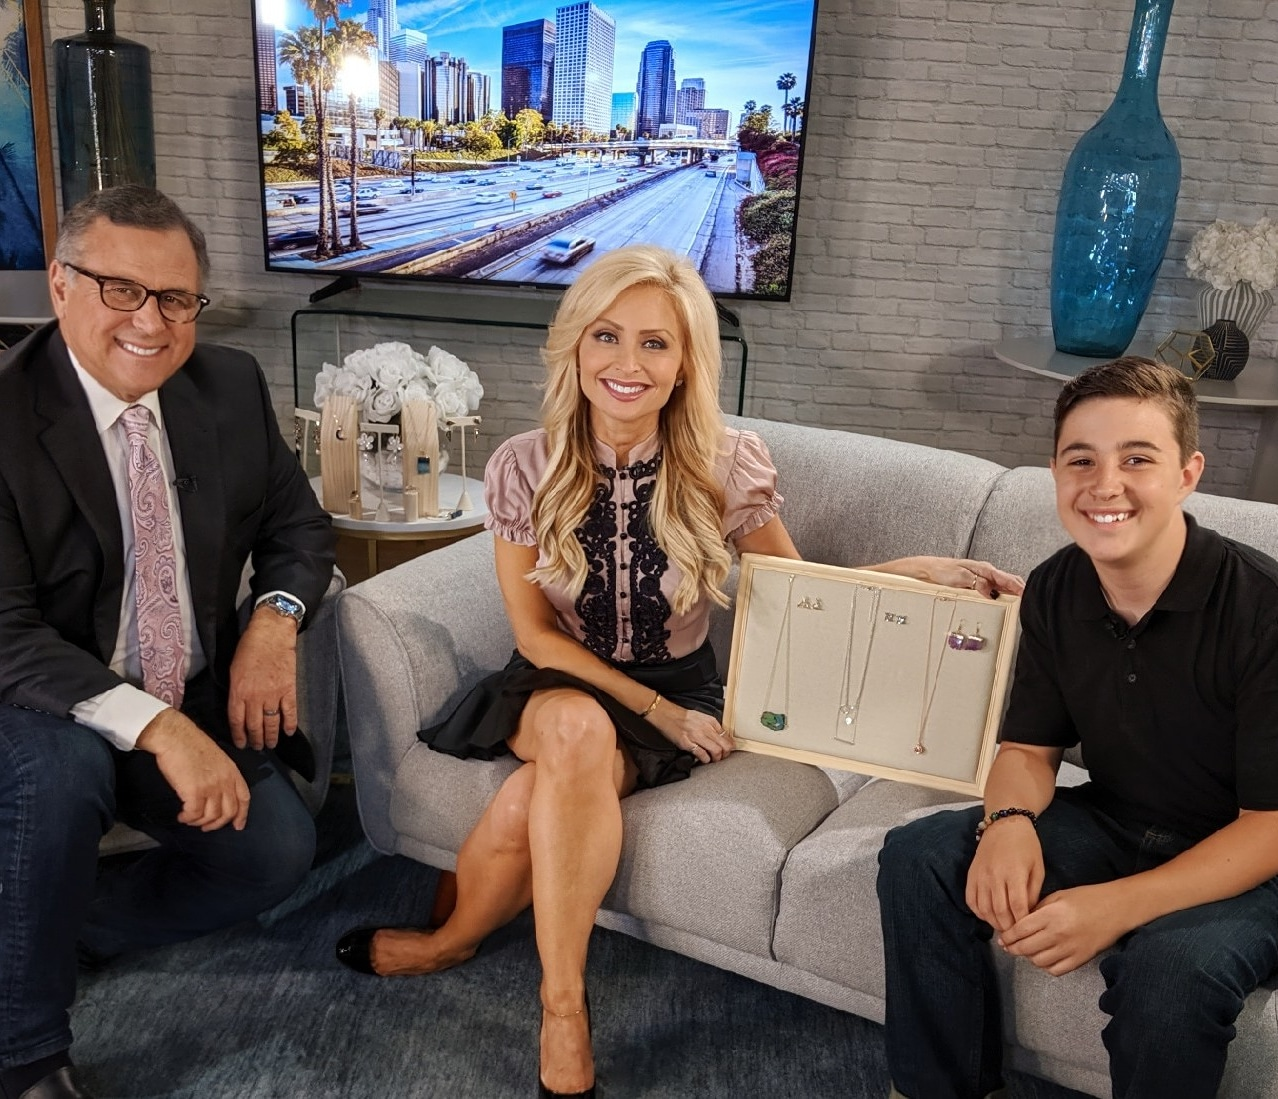 Young entrepreneur & Owner of Downtown 10 Jewelry, Cross Kodesh, 12, was just featured on Los Angeles television show Carlos & Lisa of BeondTV! Click to Watch the segment!